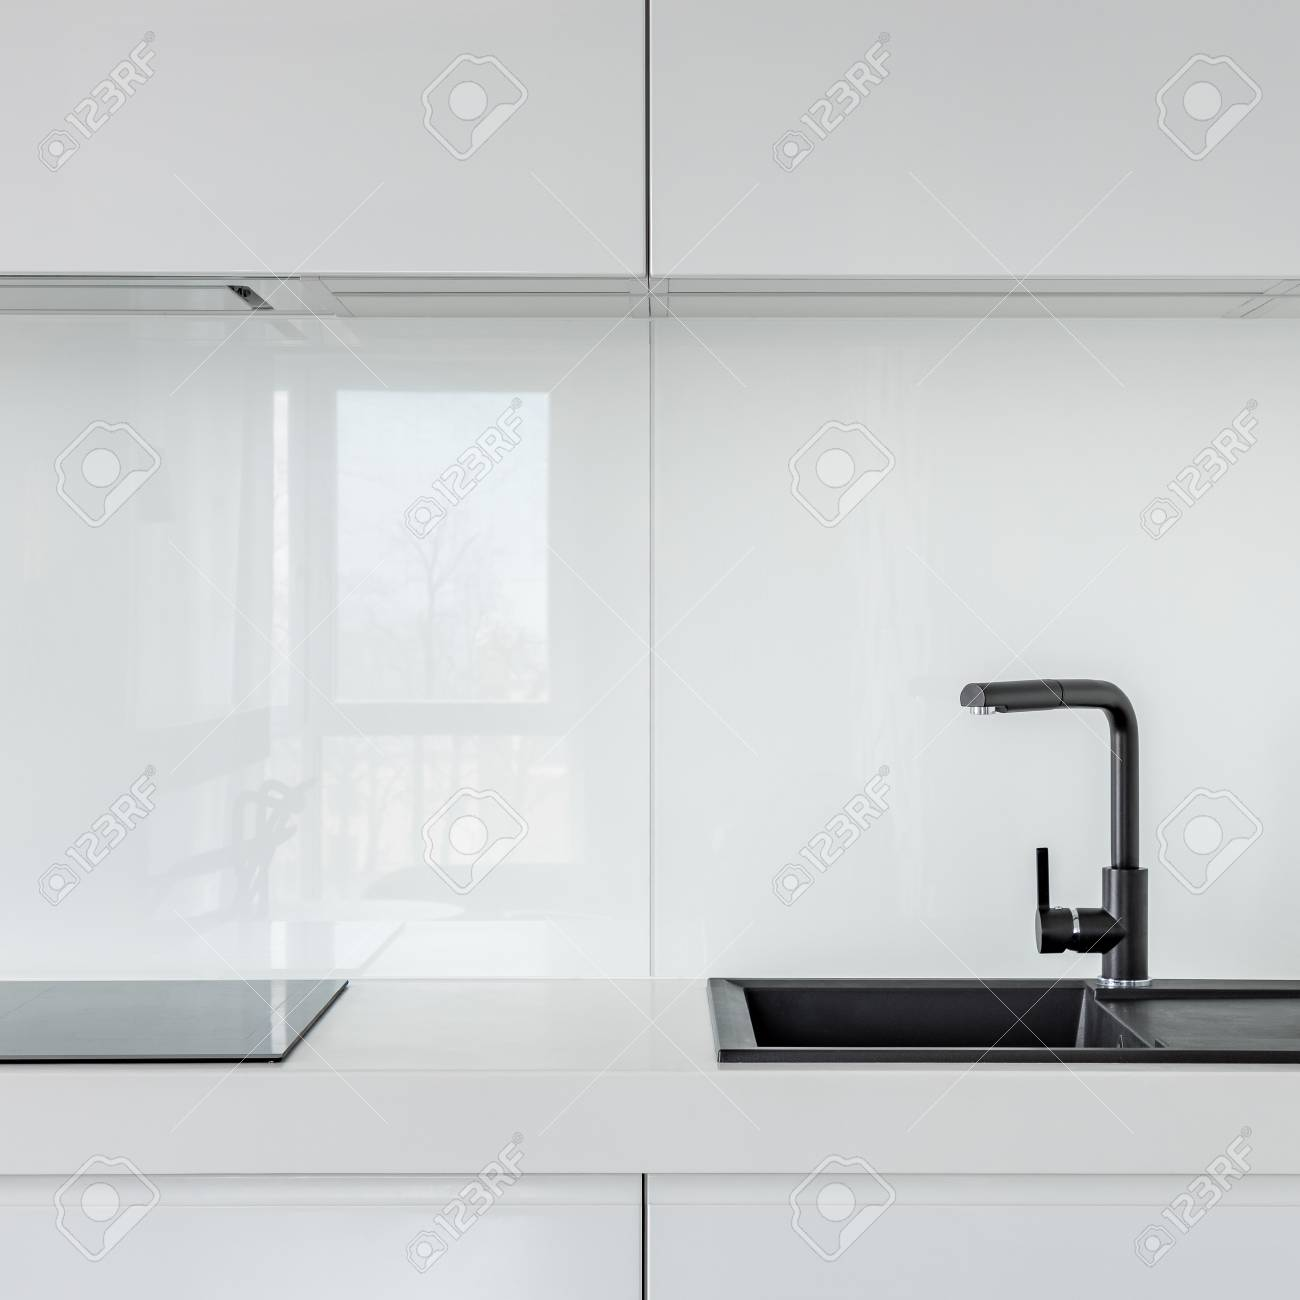 Kitchen With White Cabinets Countertop And Black Composite Stock Photo Picture Royalty Free Image 107812393